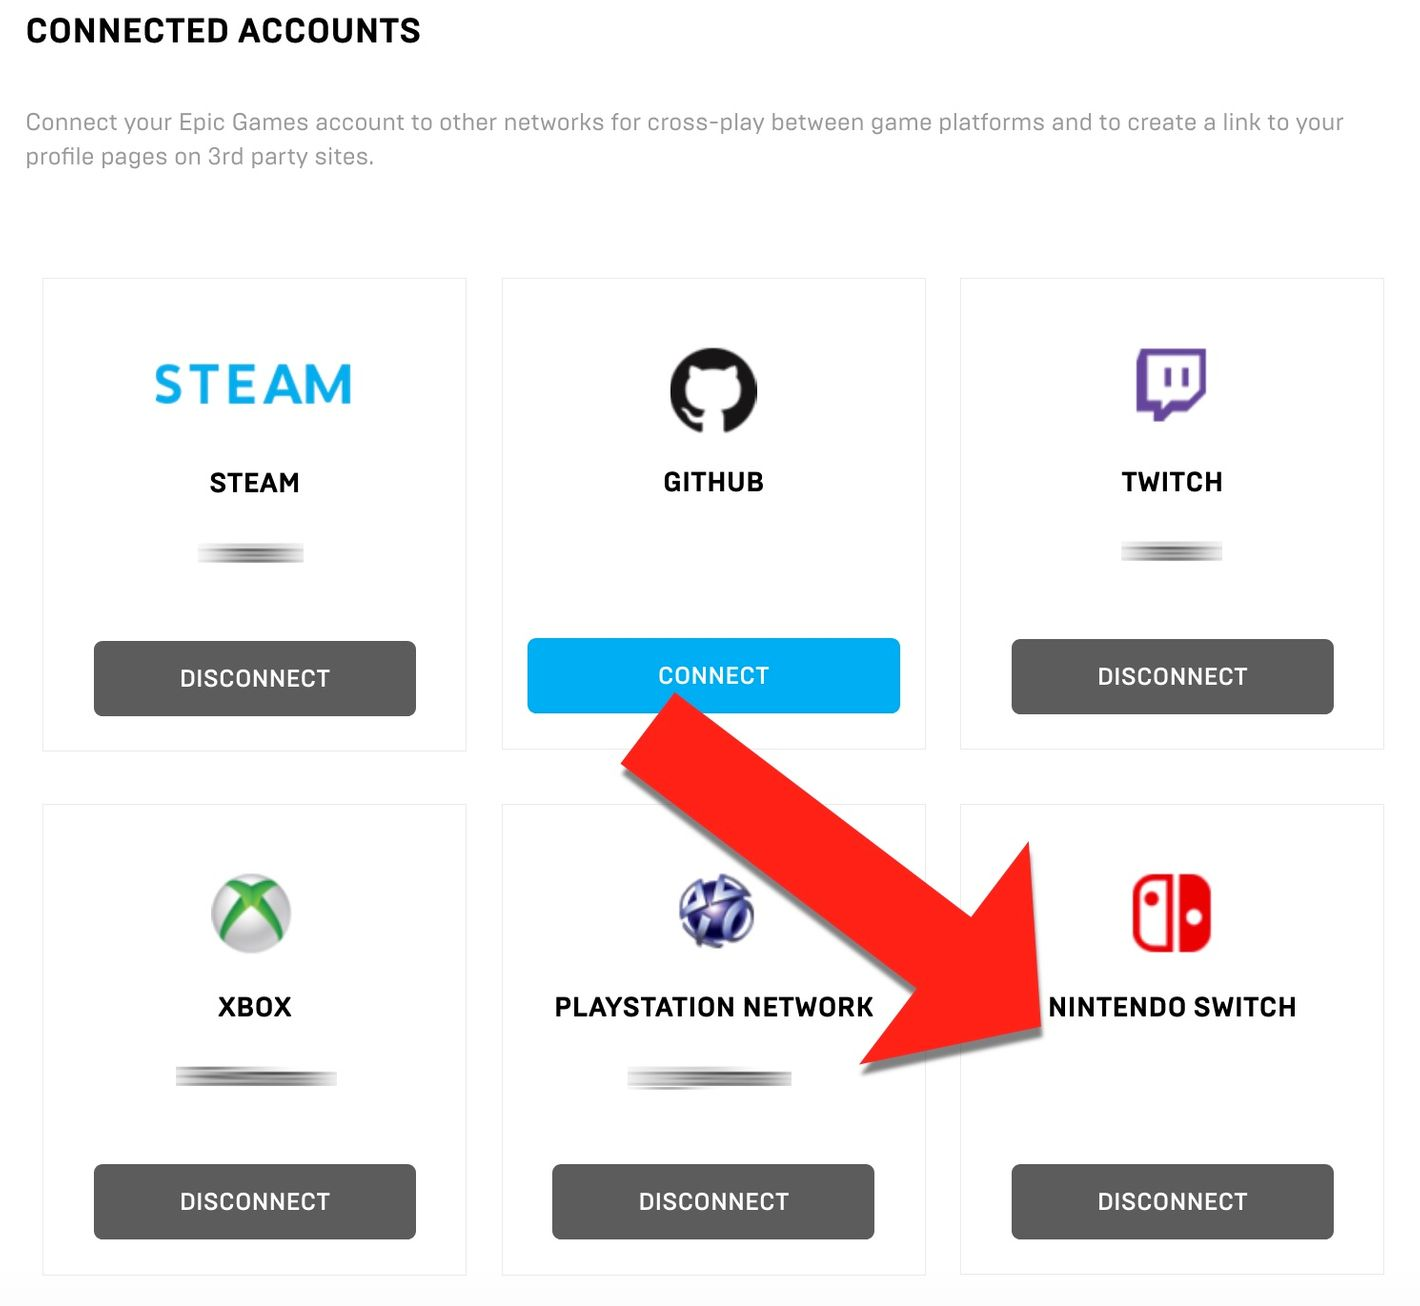 How to Link Nintendo Switch Account to Main Fortnite Account